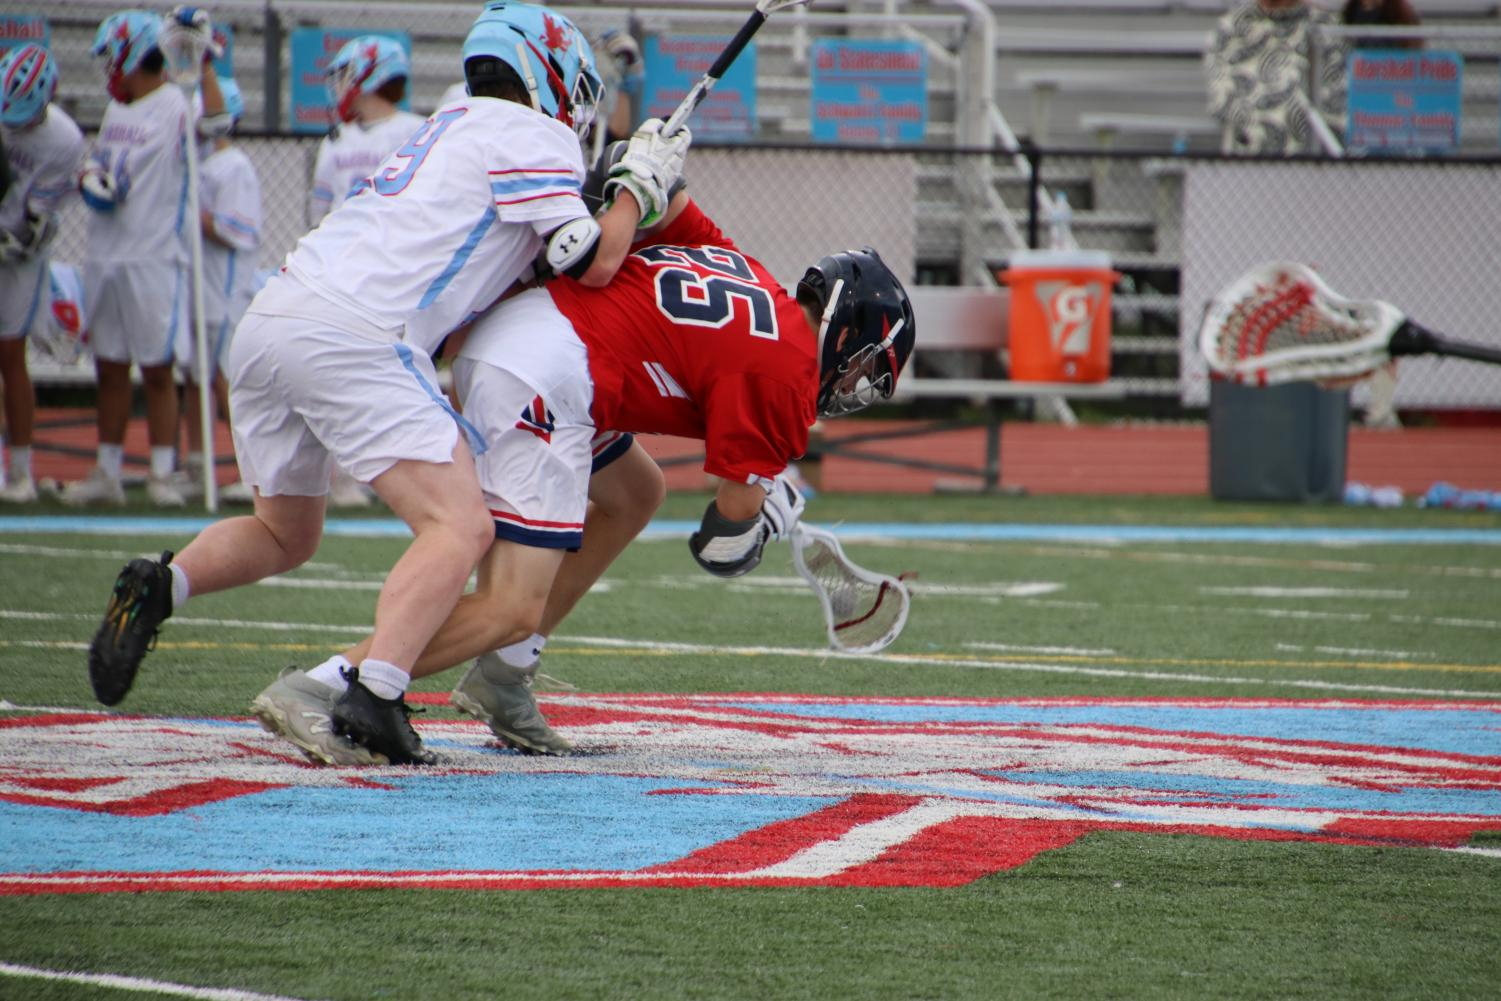 Bending over to dodge an opponent, midfielder Caden Philips battles to maintain possession. The team's efforts ultimately weren't enough as they lost 11-7.